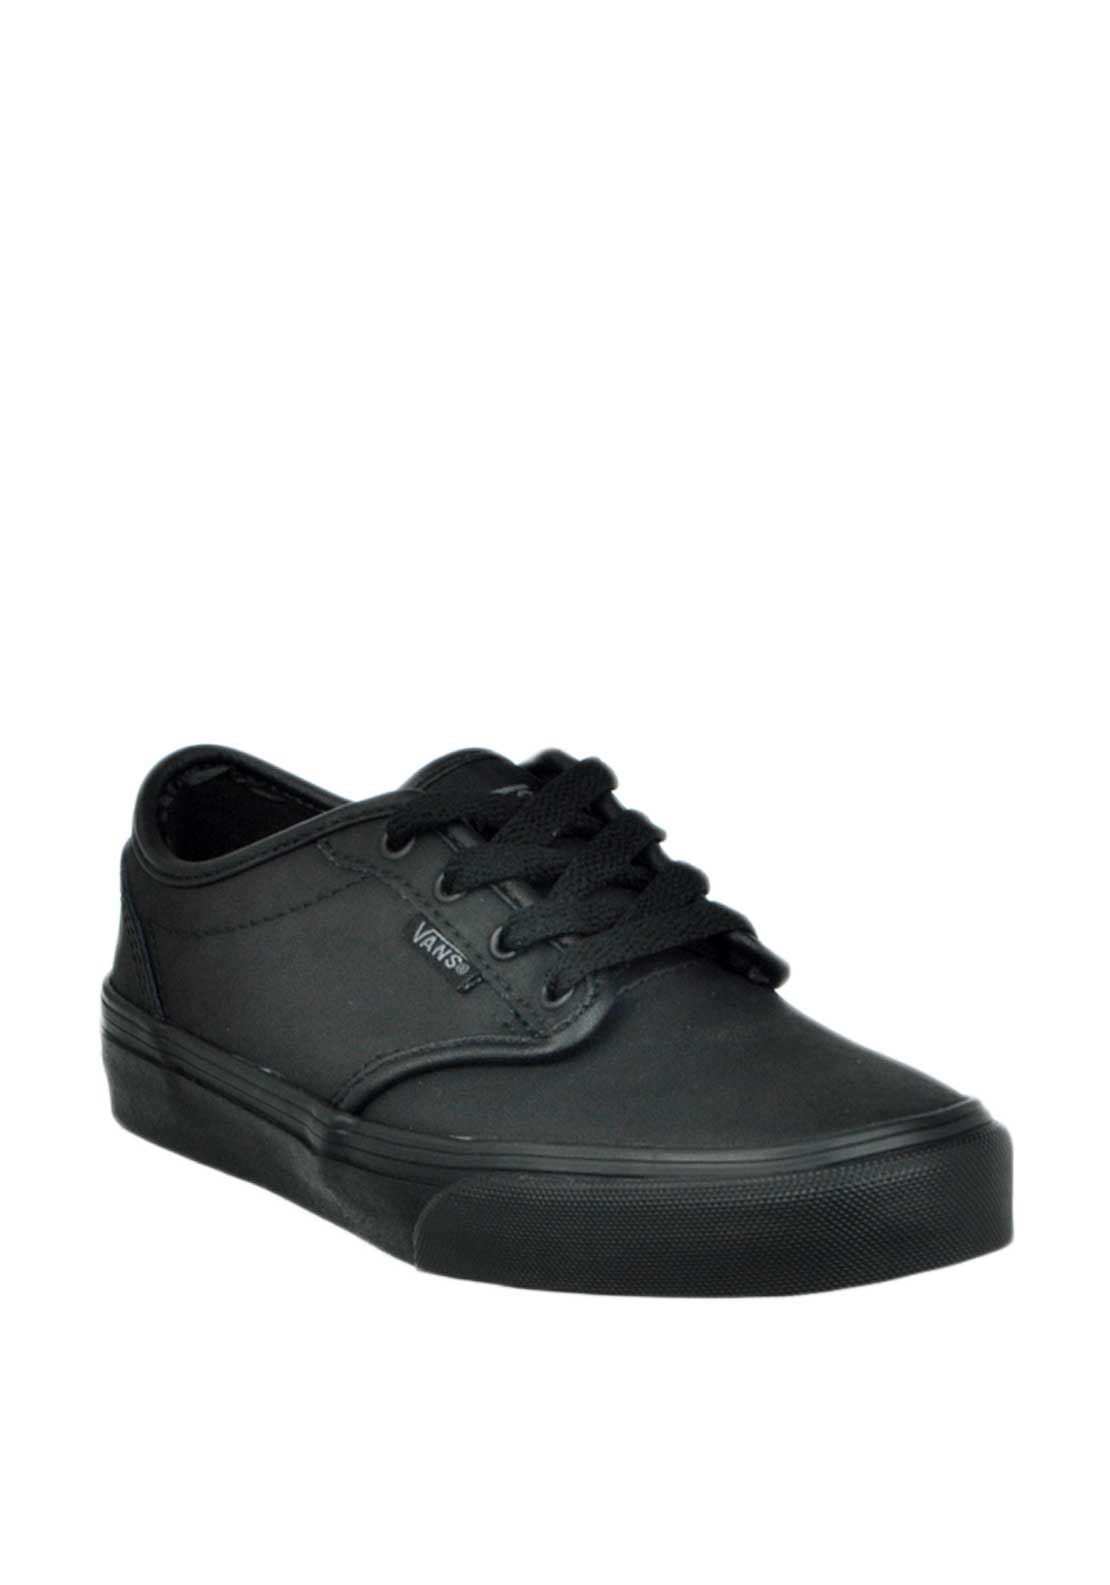 Vans Kids Authentic Trainers, Black